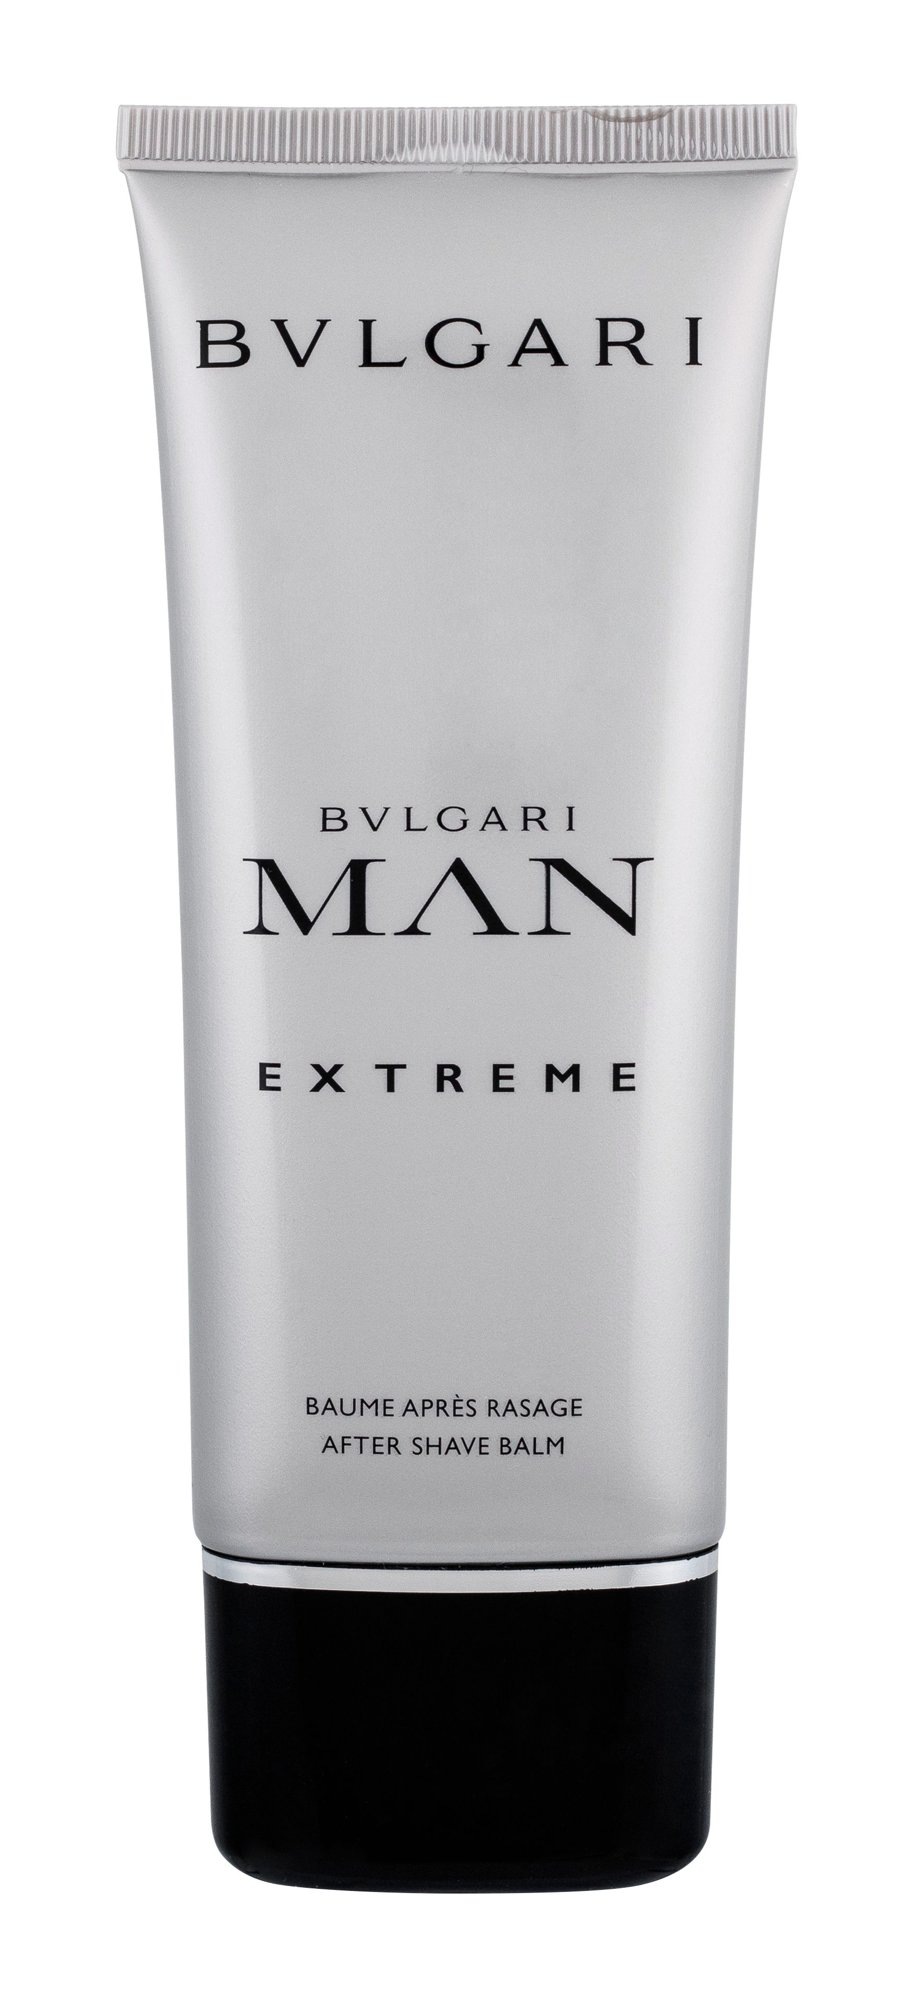 Bvlgari Bvlgari Man Extreme After shave balm 100ml